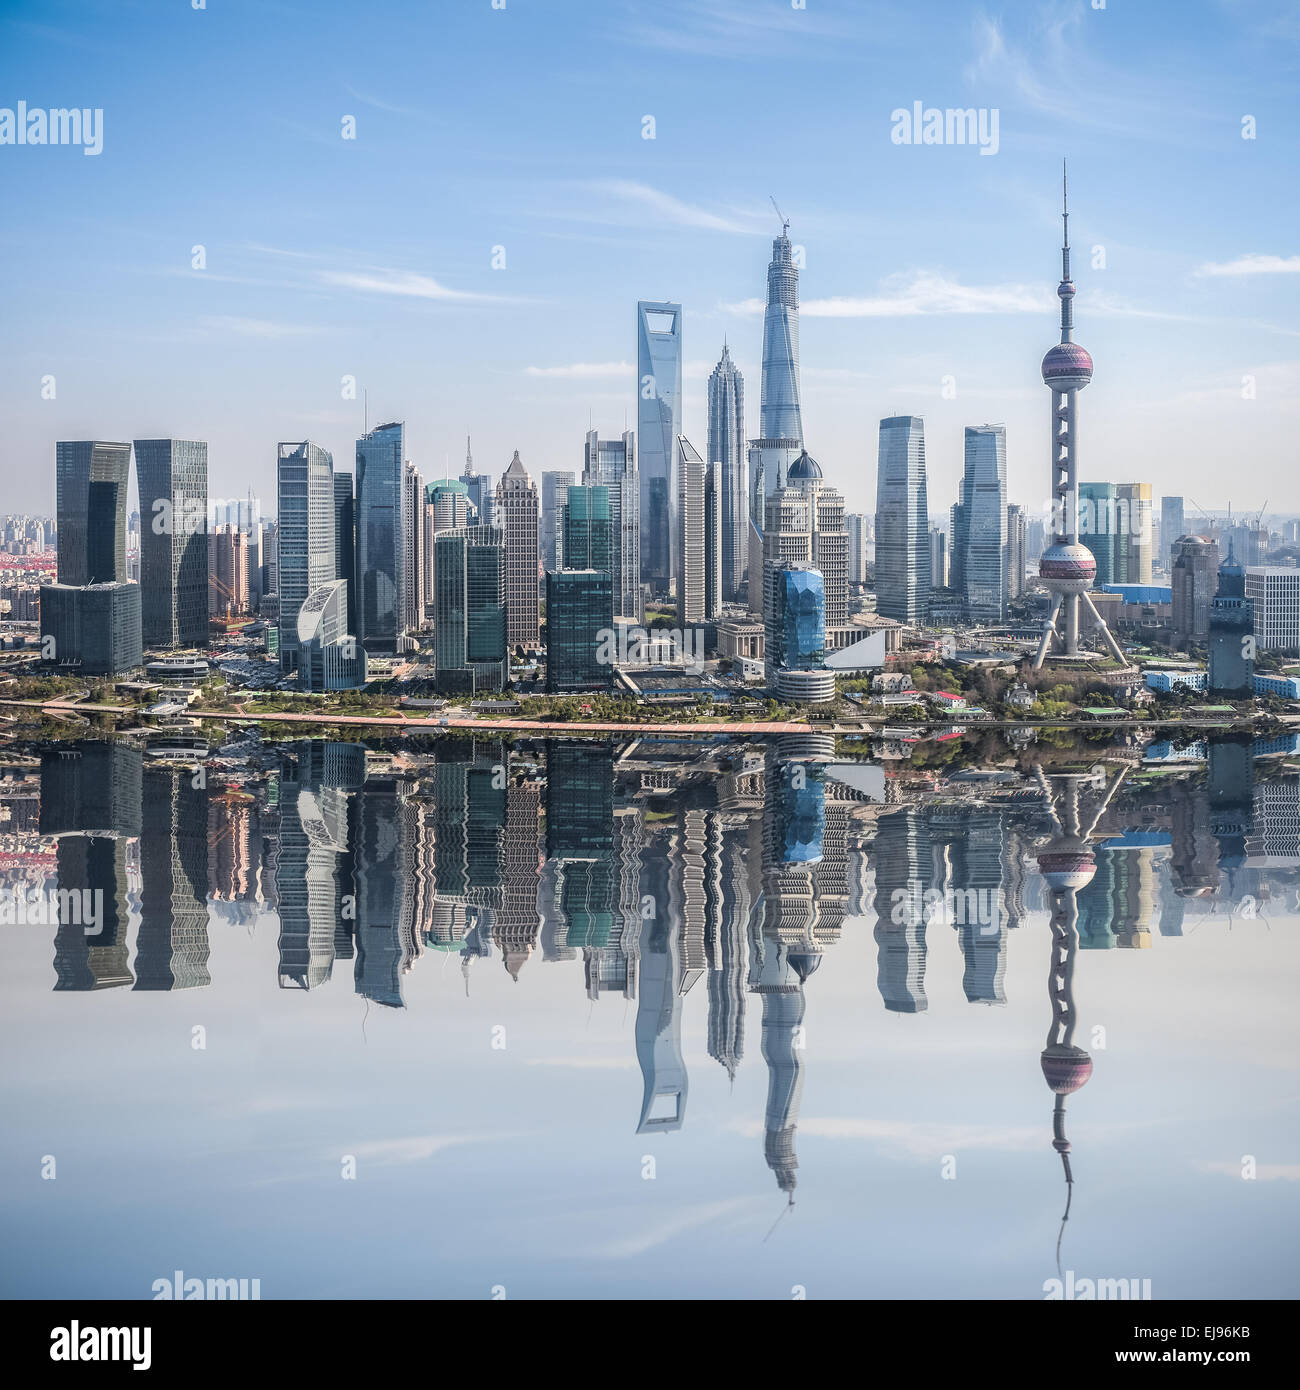 developed city in shanghai pudong - Stock Image